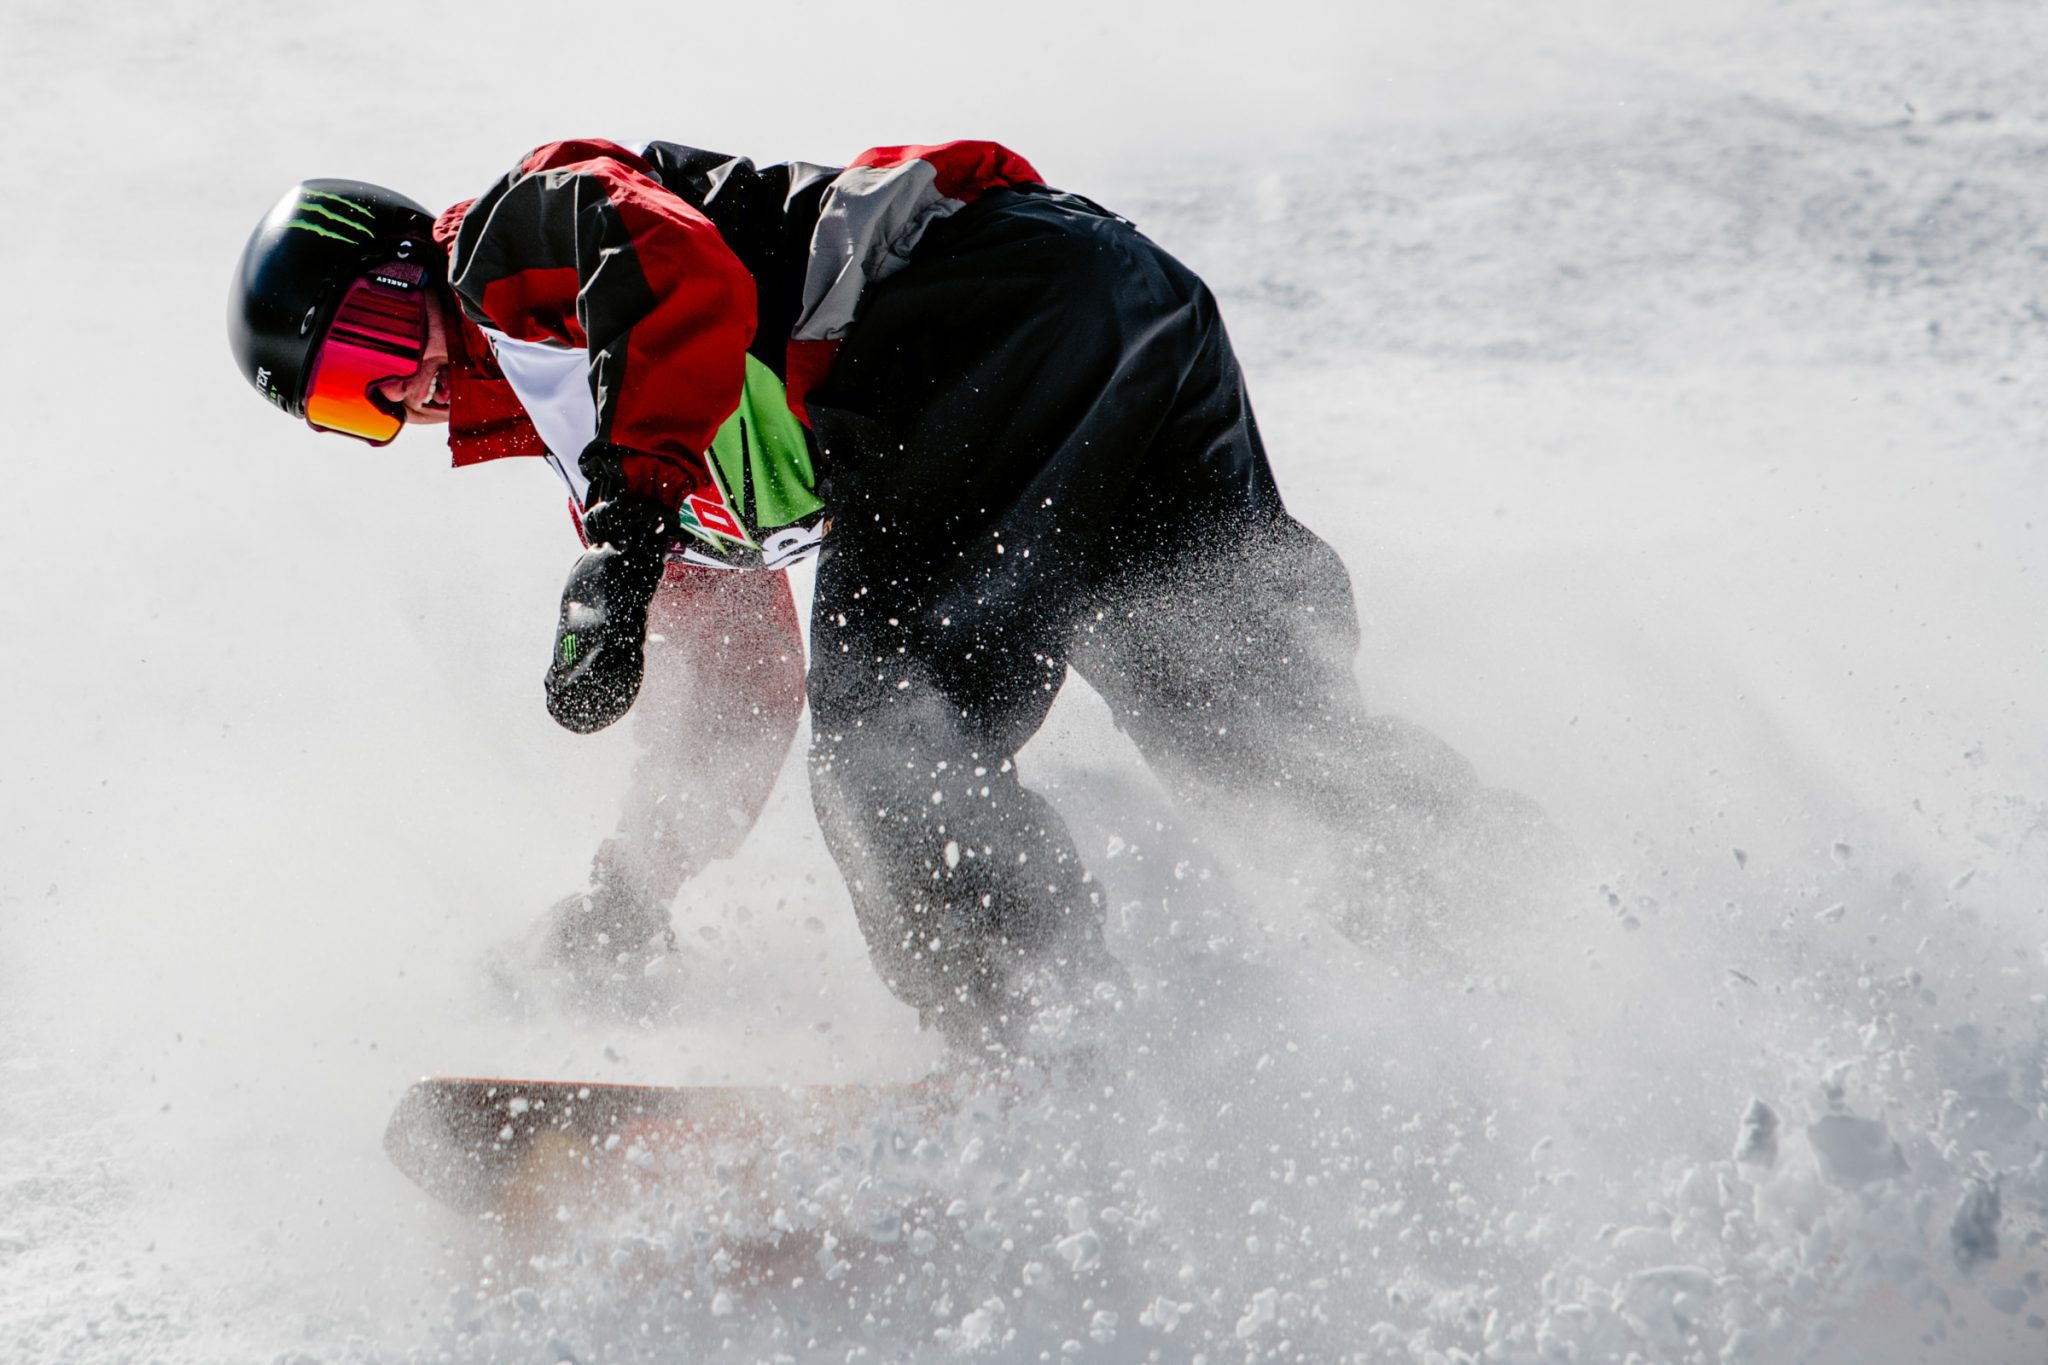 Snowboarder turning and kicking up snow